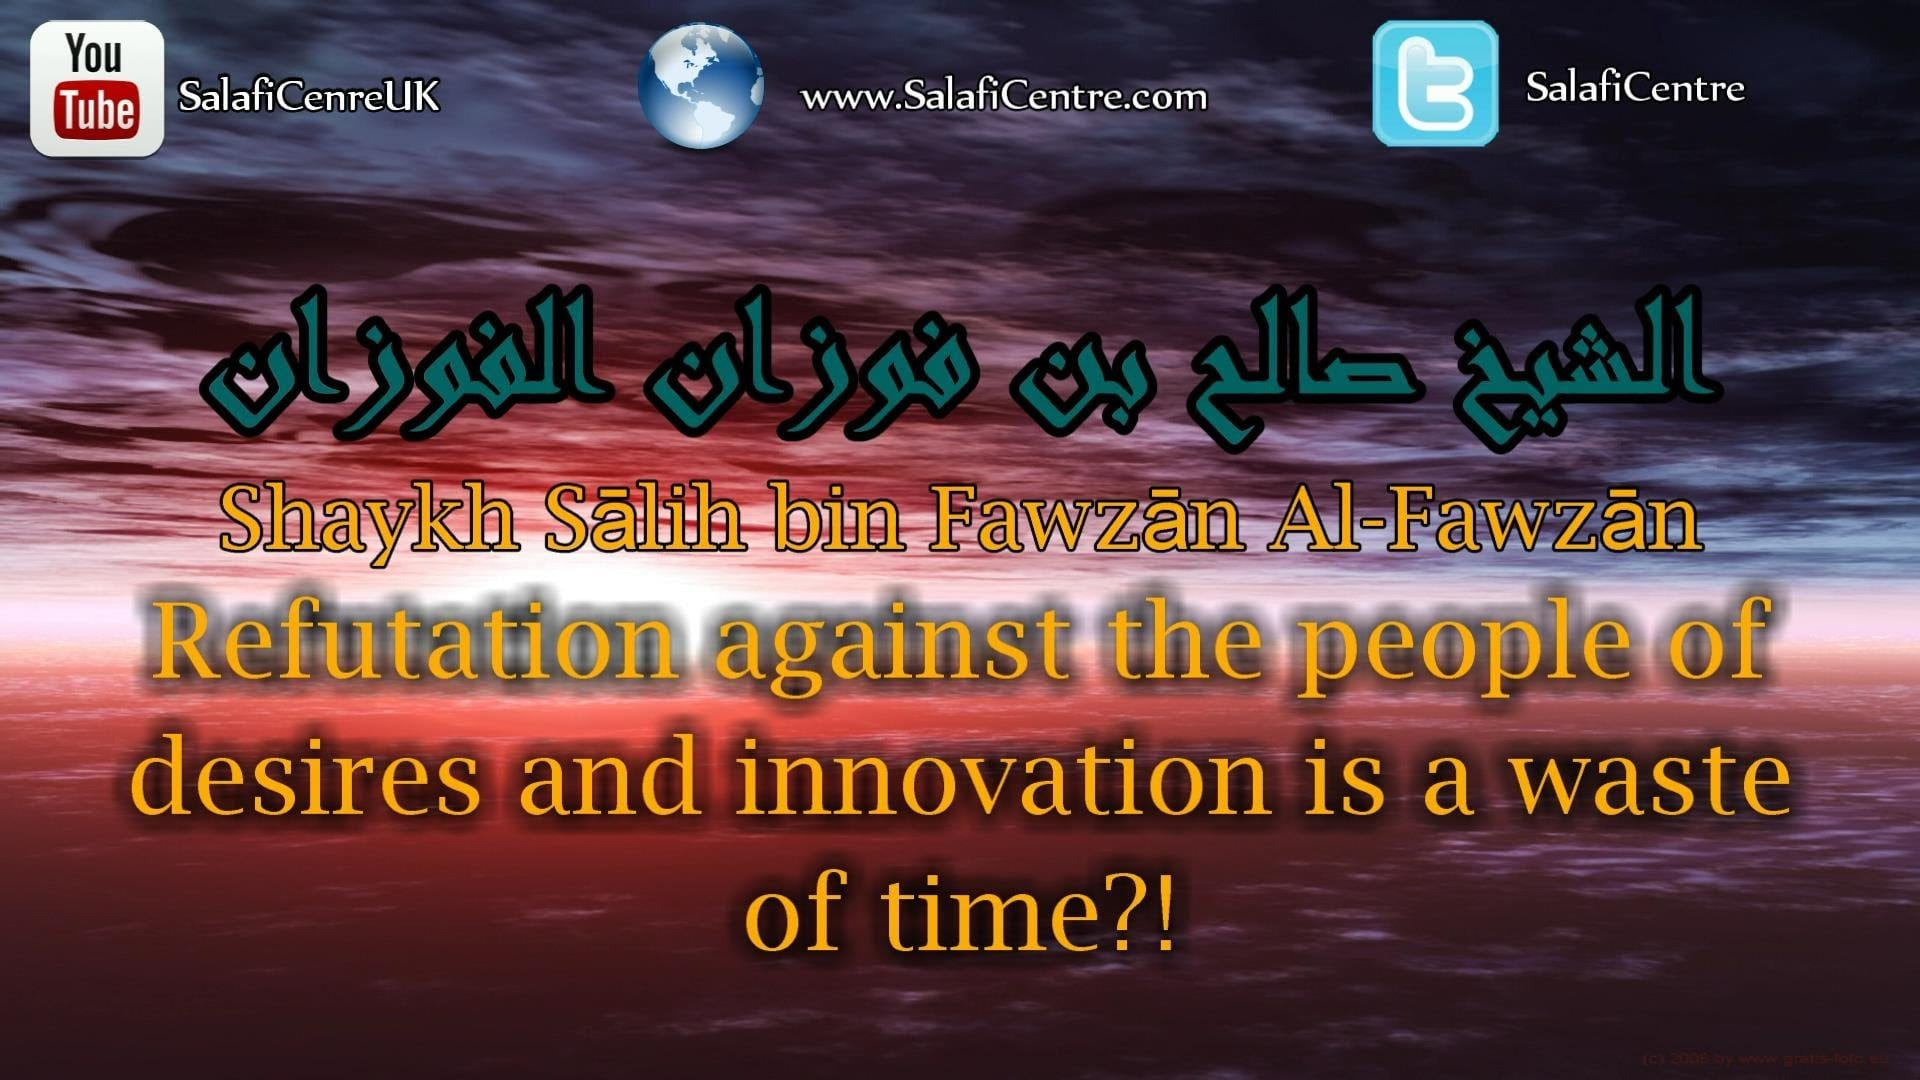 Is Refutation against the people of desires and innovation a waste of time? | Shaykh Sālih Al-Fawzān